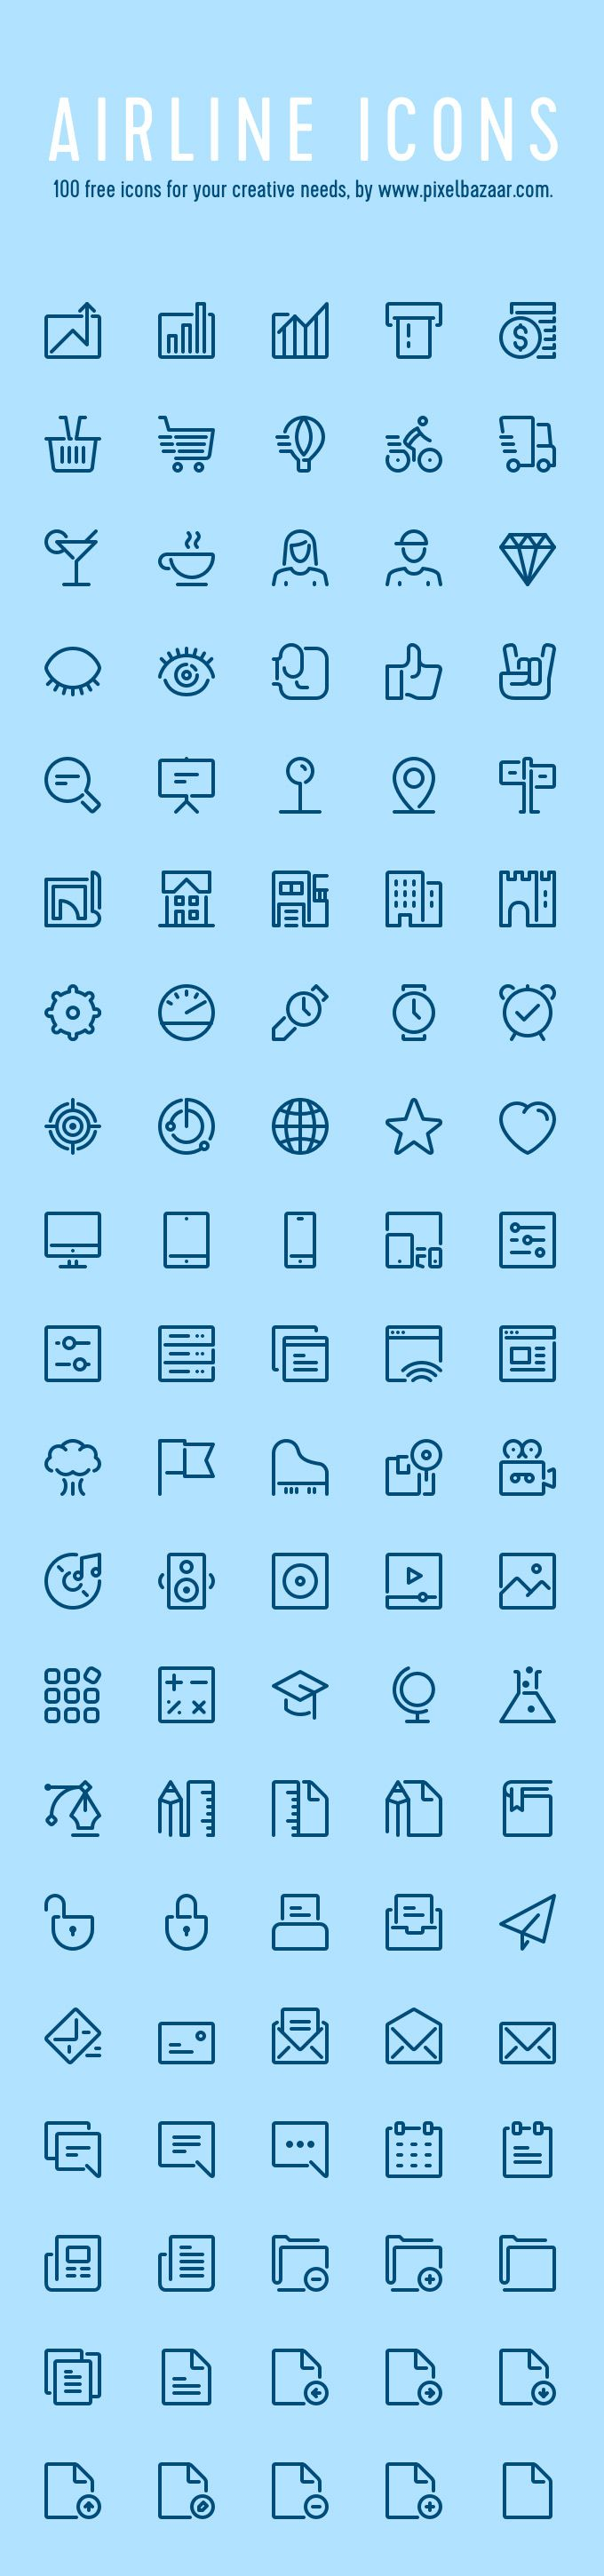 100 Airline Icons - download freebie by PixelBuddha